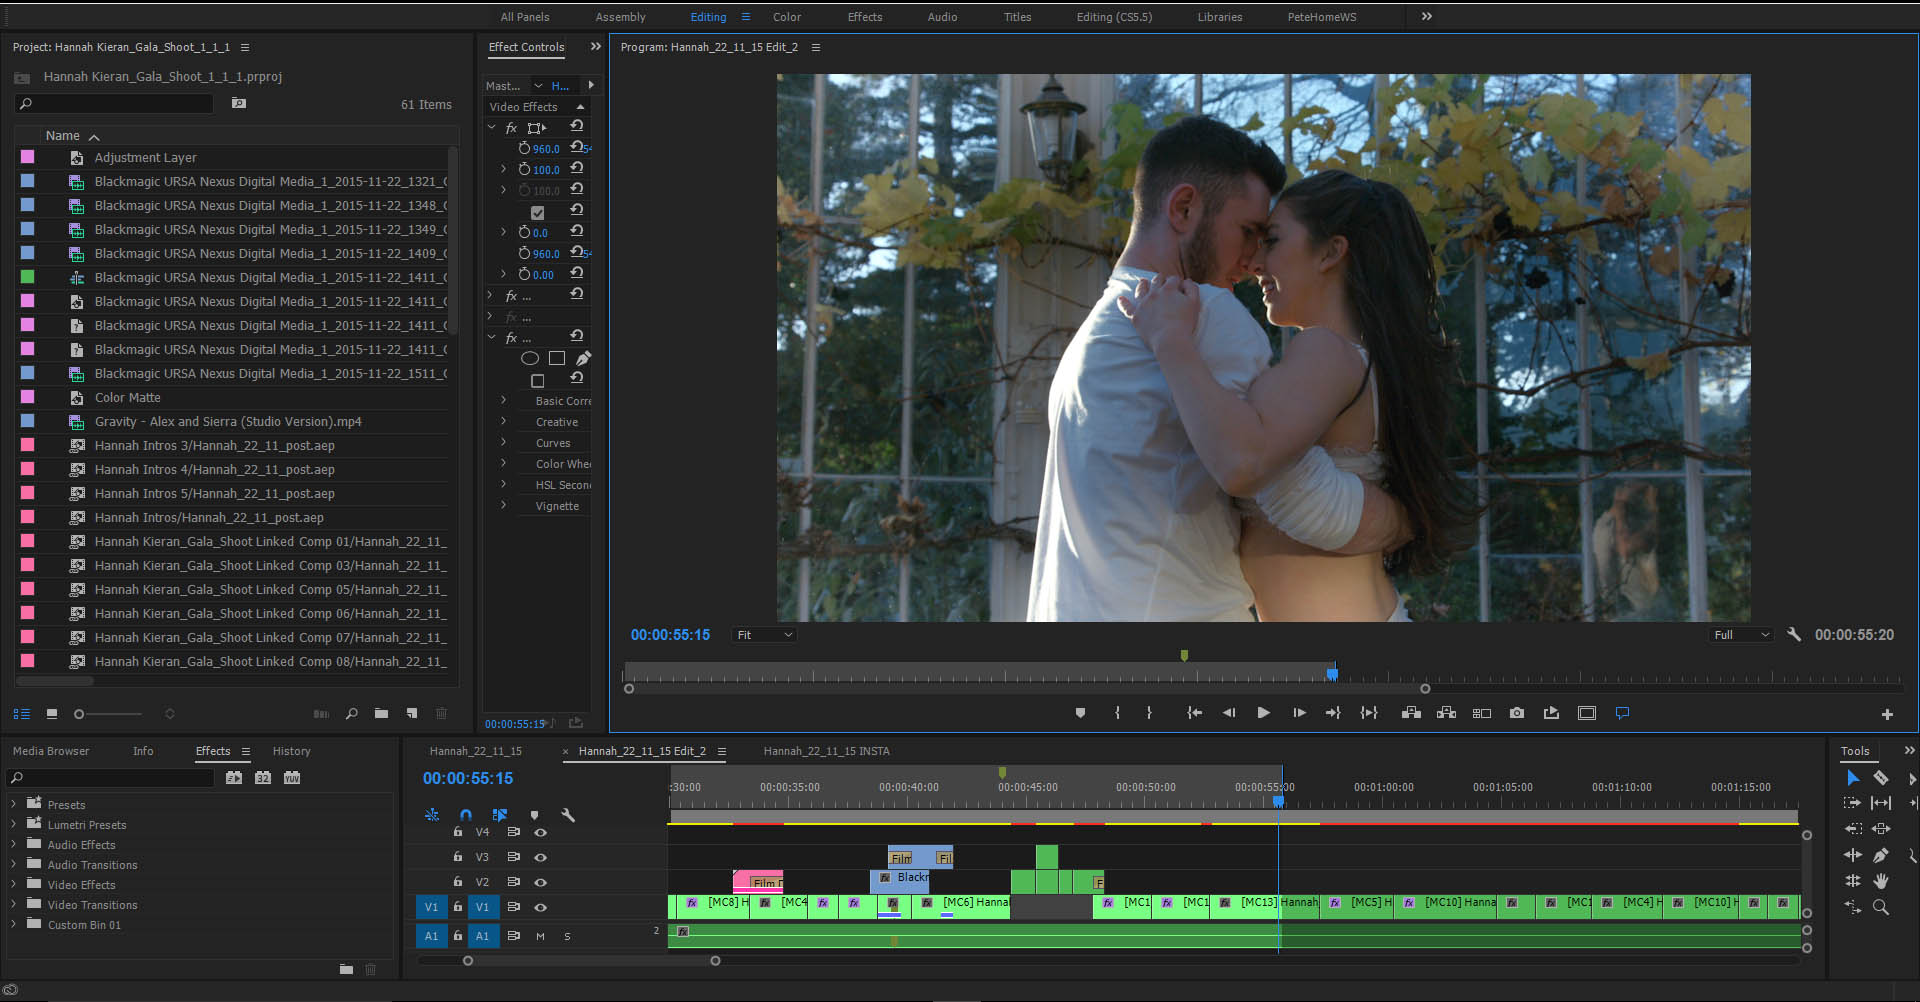 Video editing in Adobe Premiere Pro CC 2017.